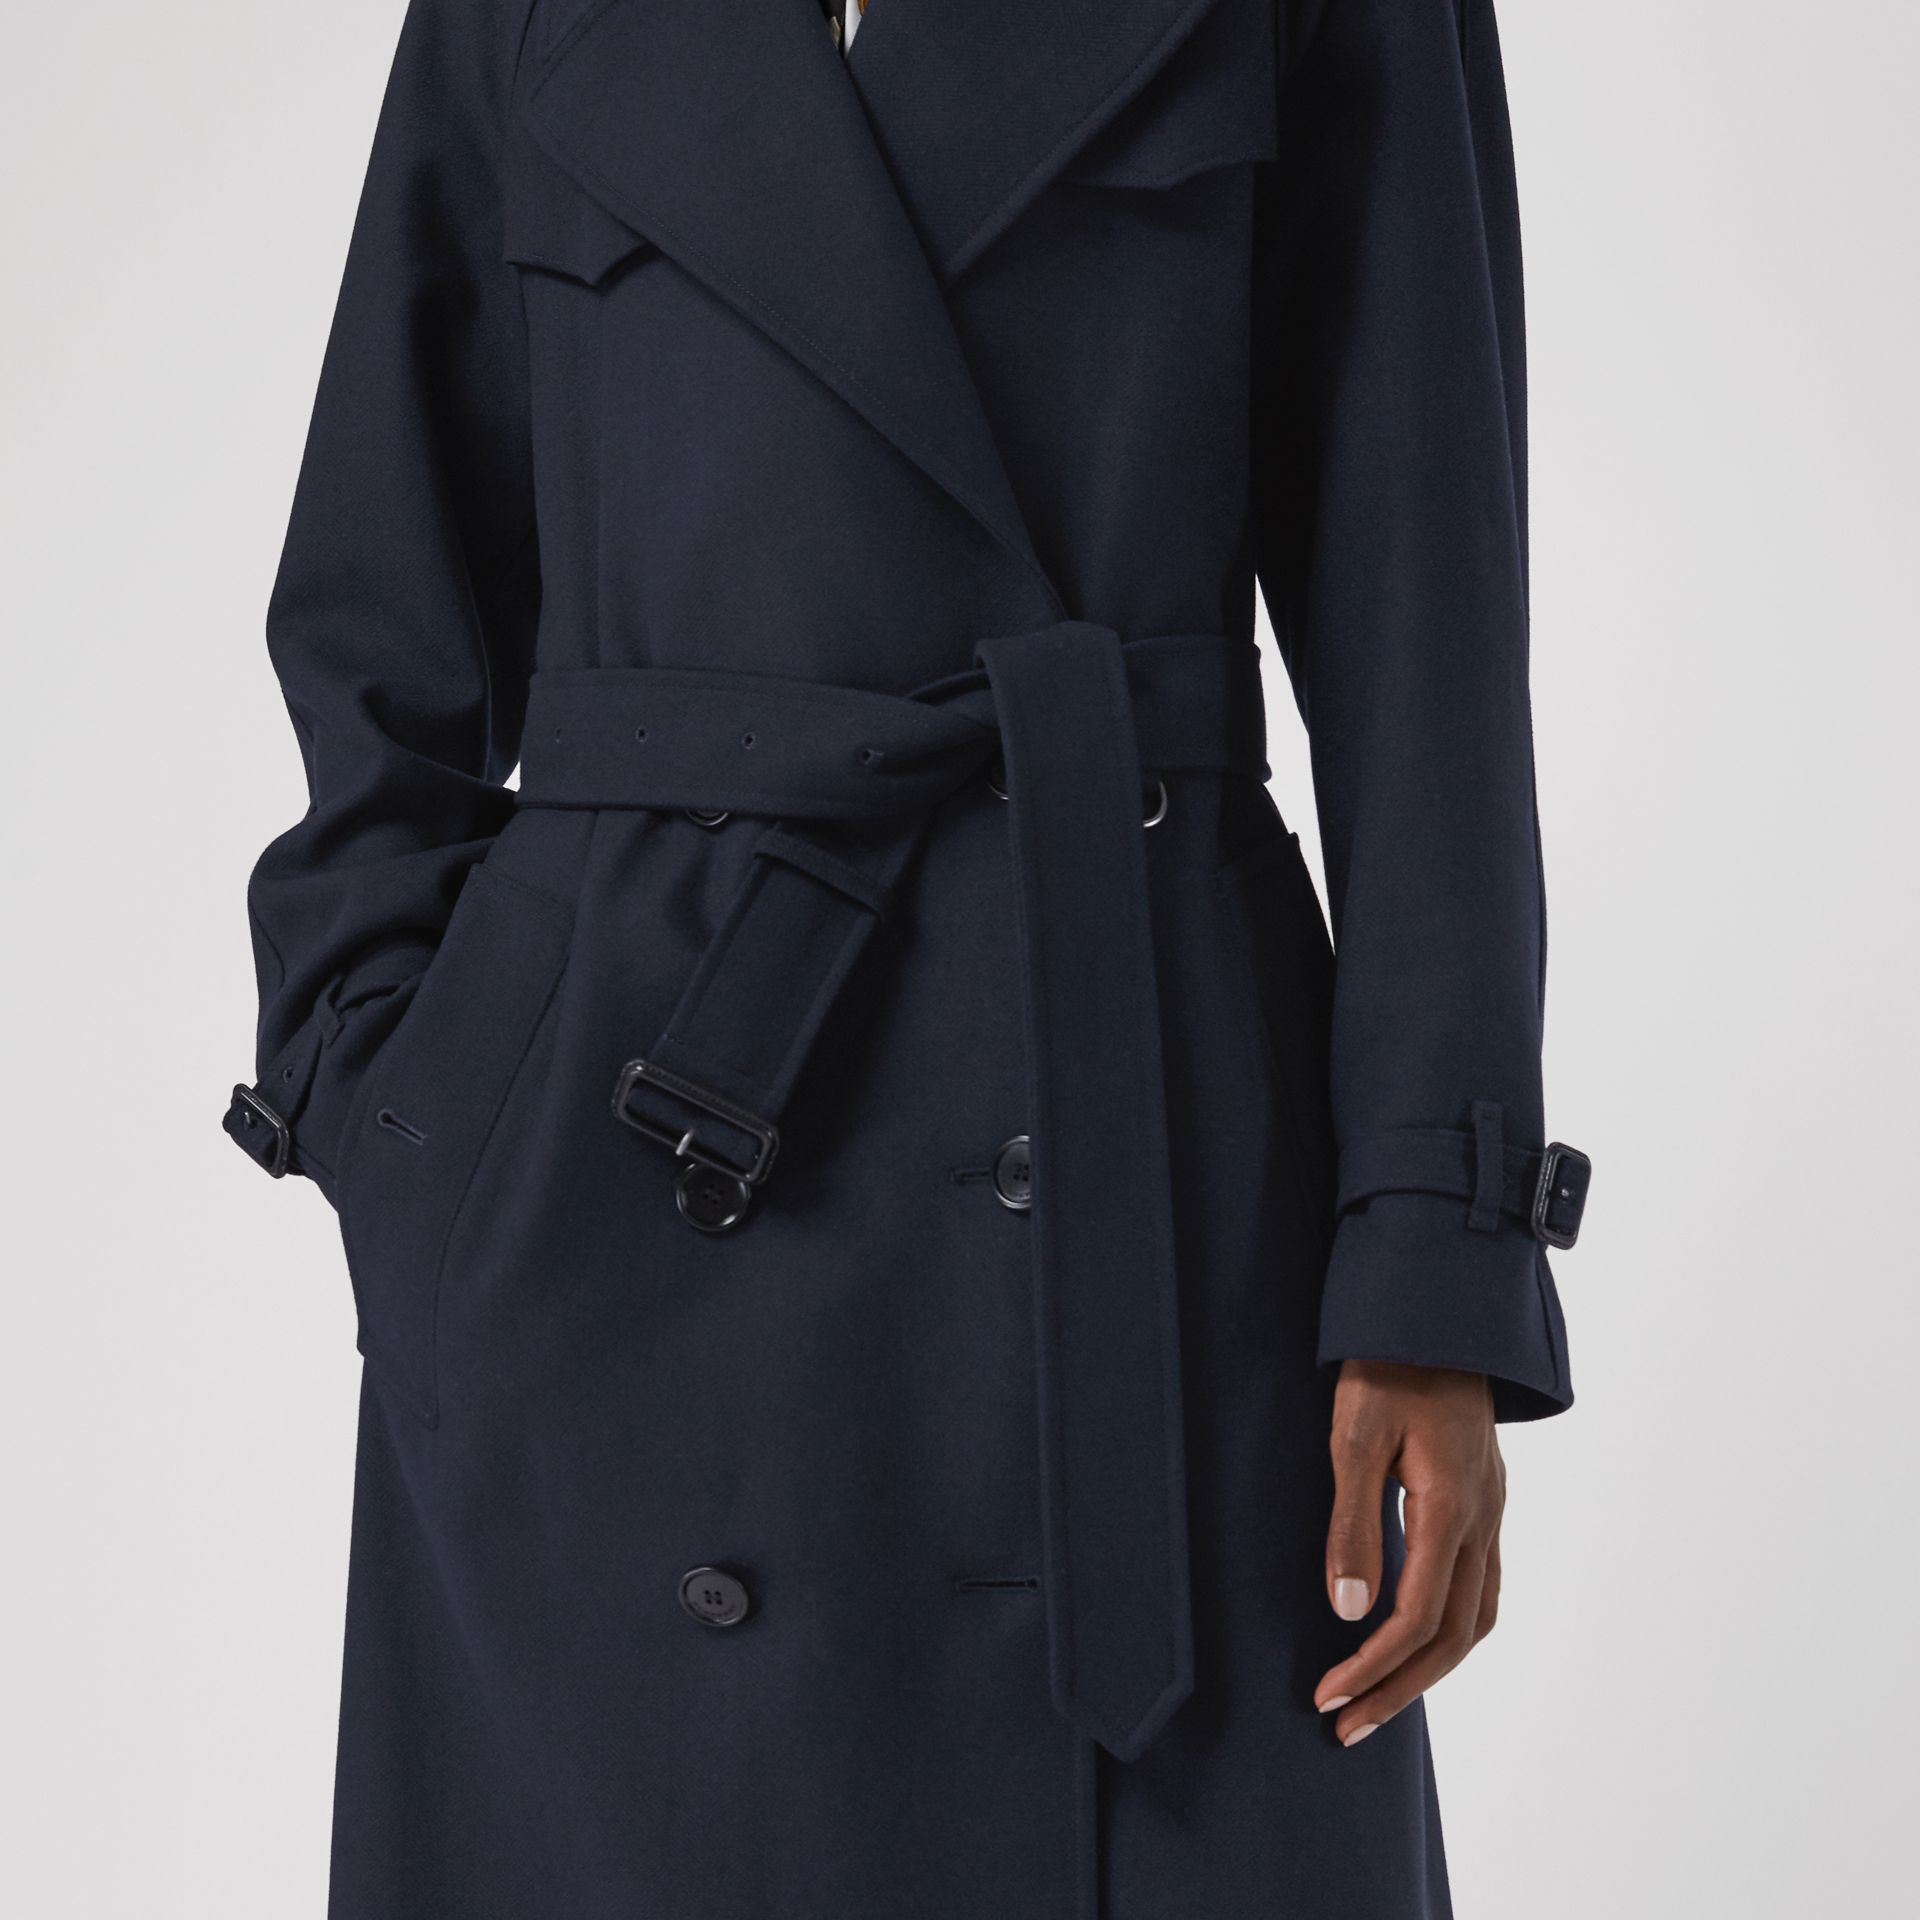 Herringbone Wool Blend Trench Coat in Navy - Women | Burberry - gallery image 1